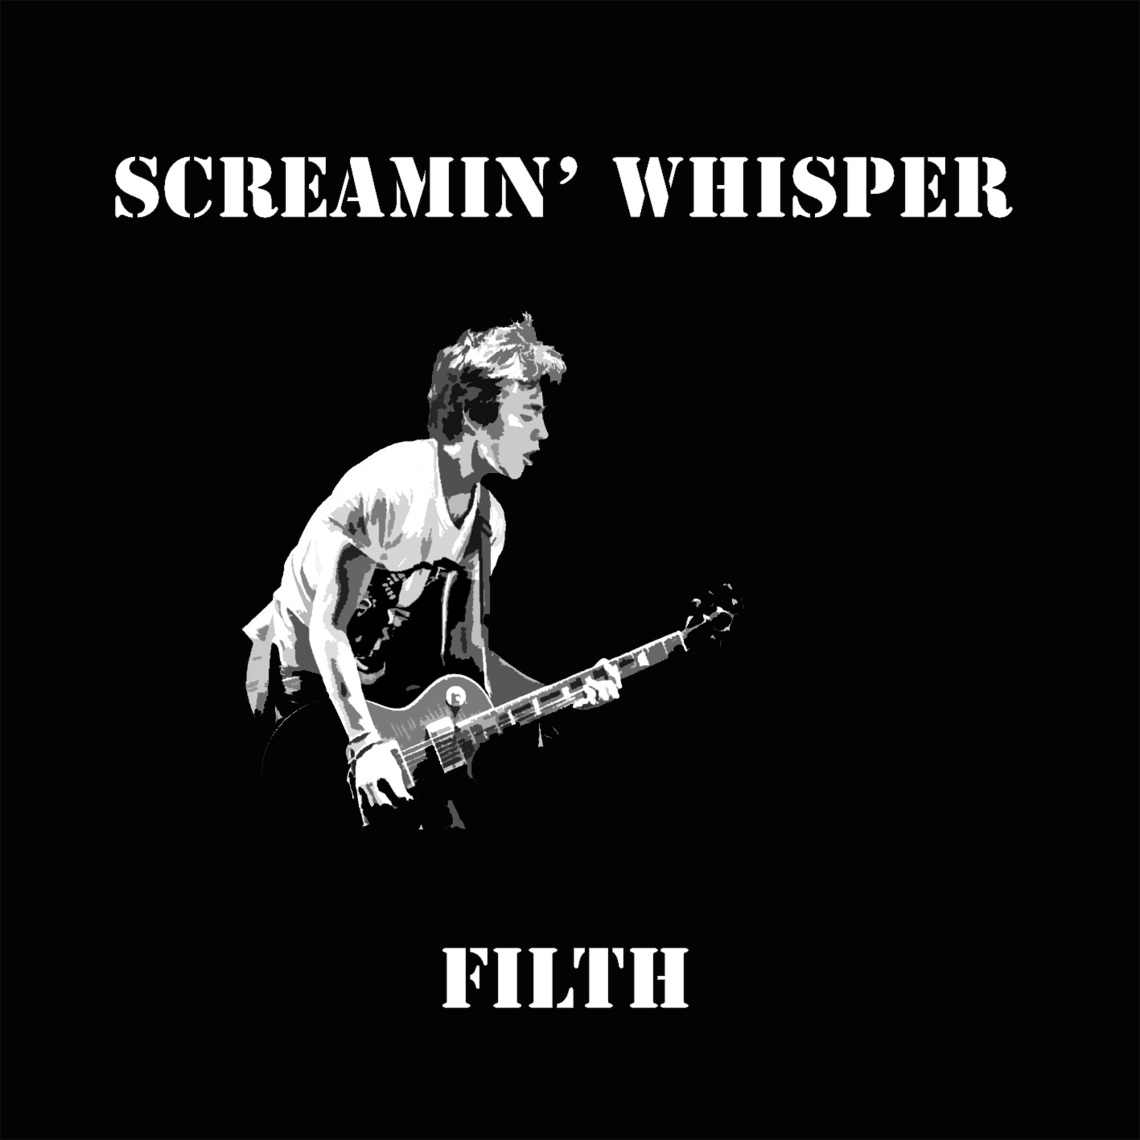 Edinburgh-based band Screamin' Whisper take influence from Rolling Stones, Arctic Monkeys and T-Rex on debut album 'Filth'